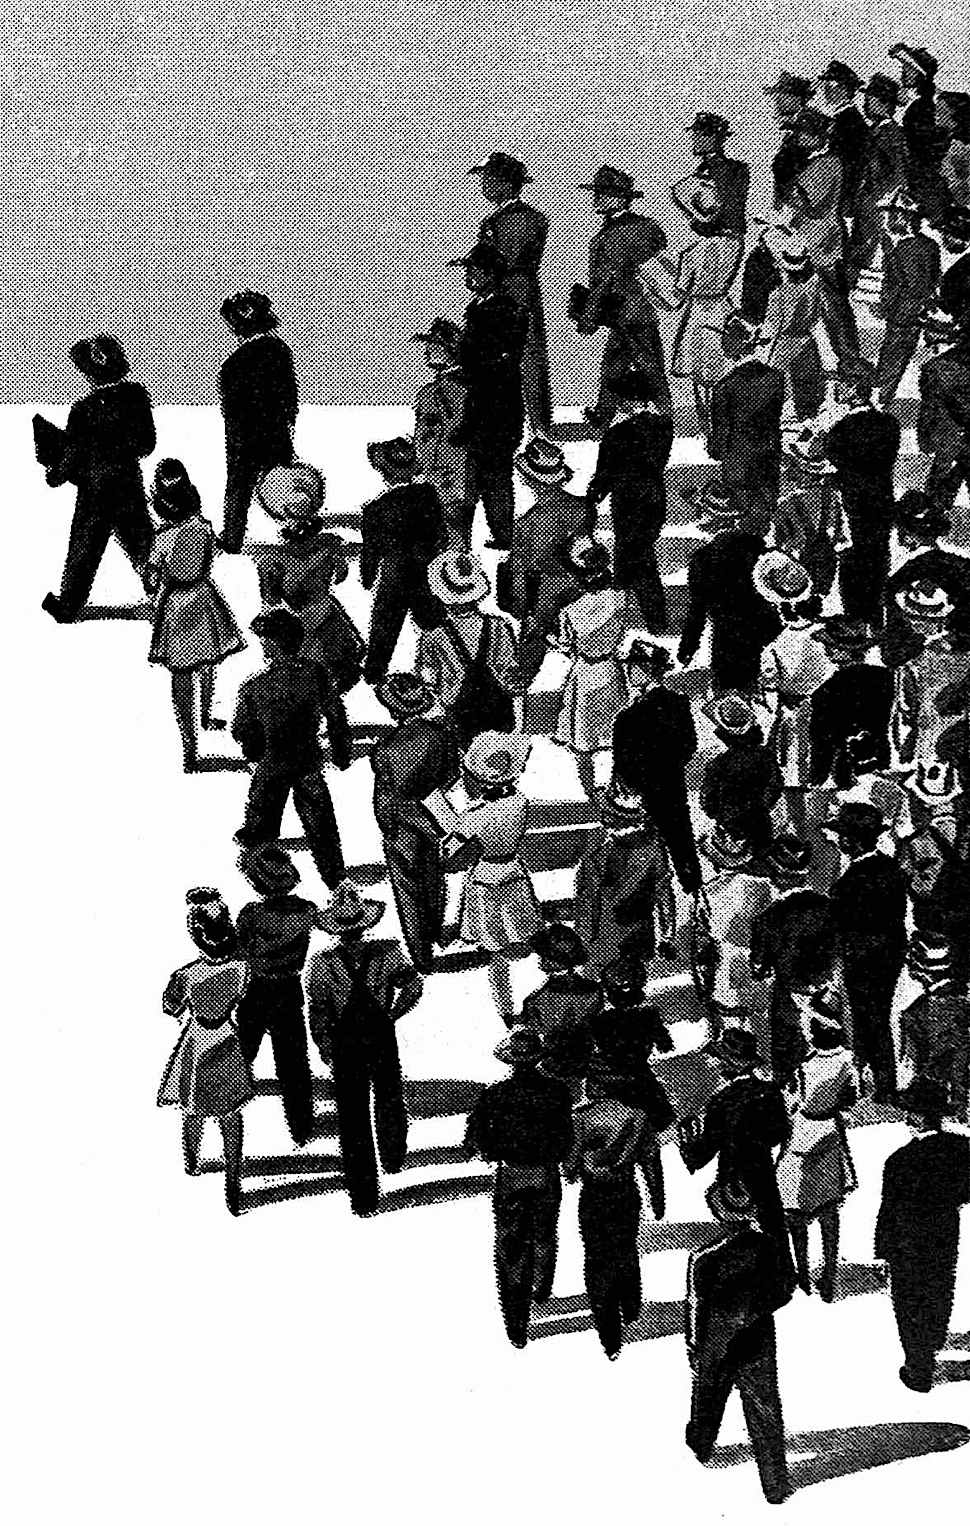 a 1946 illustration of men and women walking as a crowd